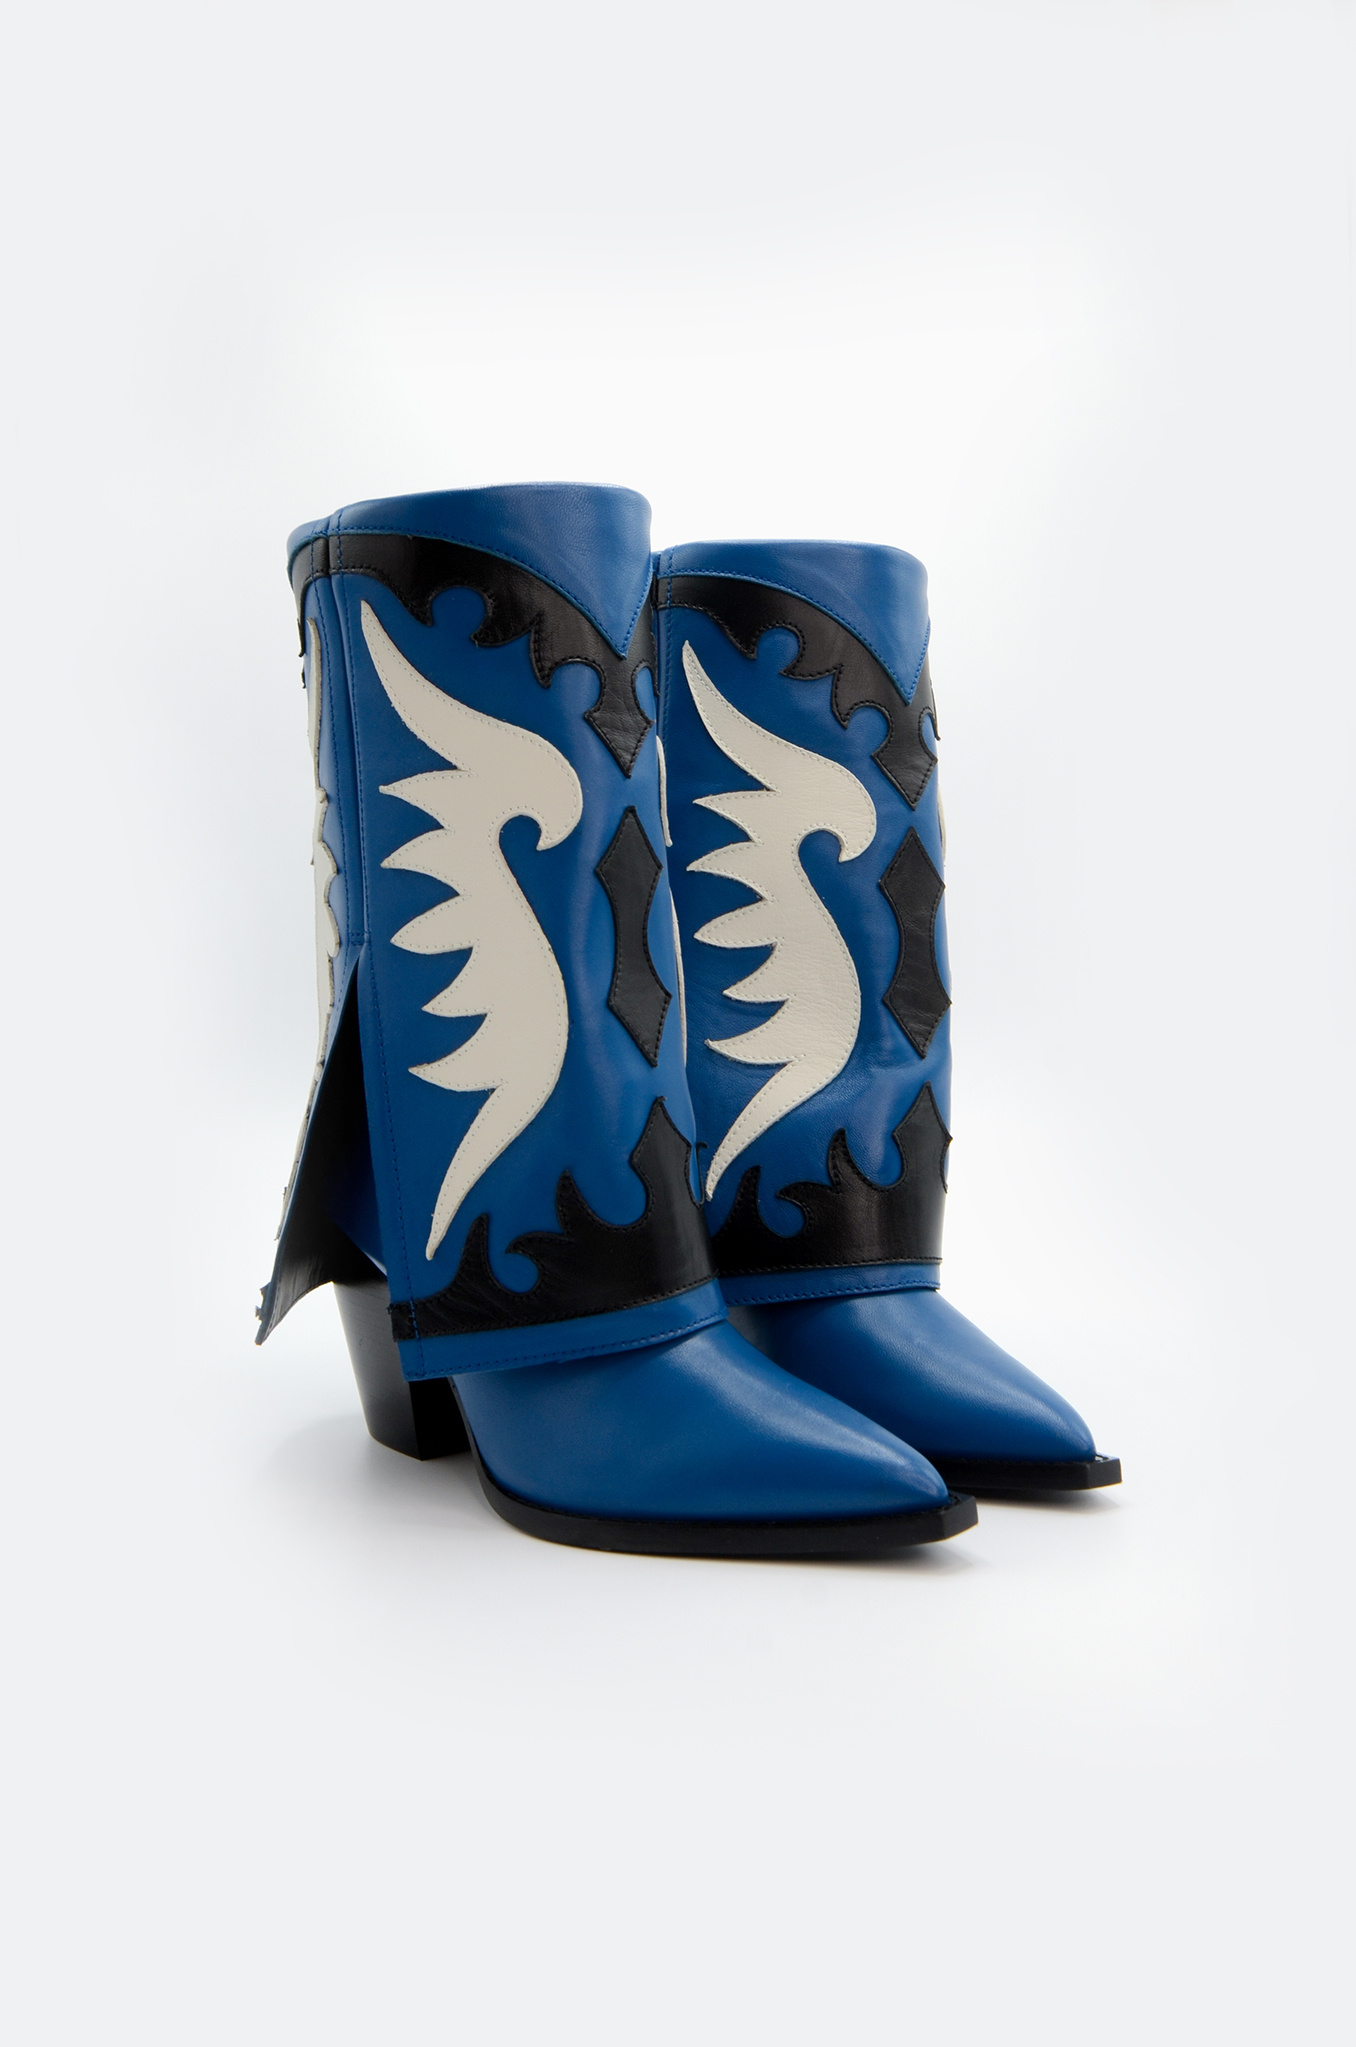 WESTERN STYLE BOOT IN BLUE-2